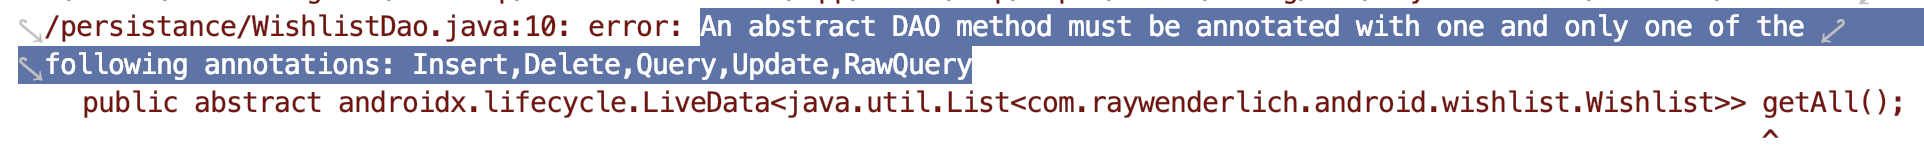 An abstract DAO method must be annotated with one and only one of the following annotations